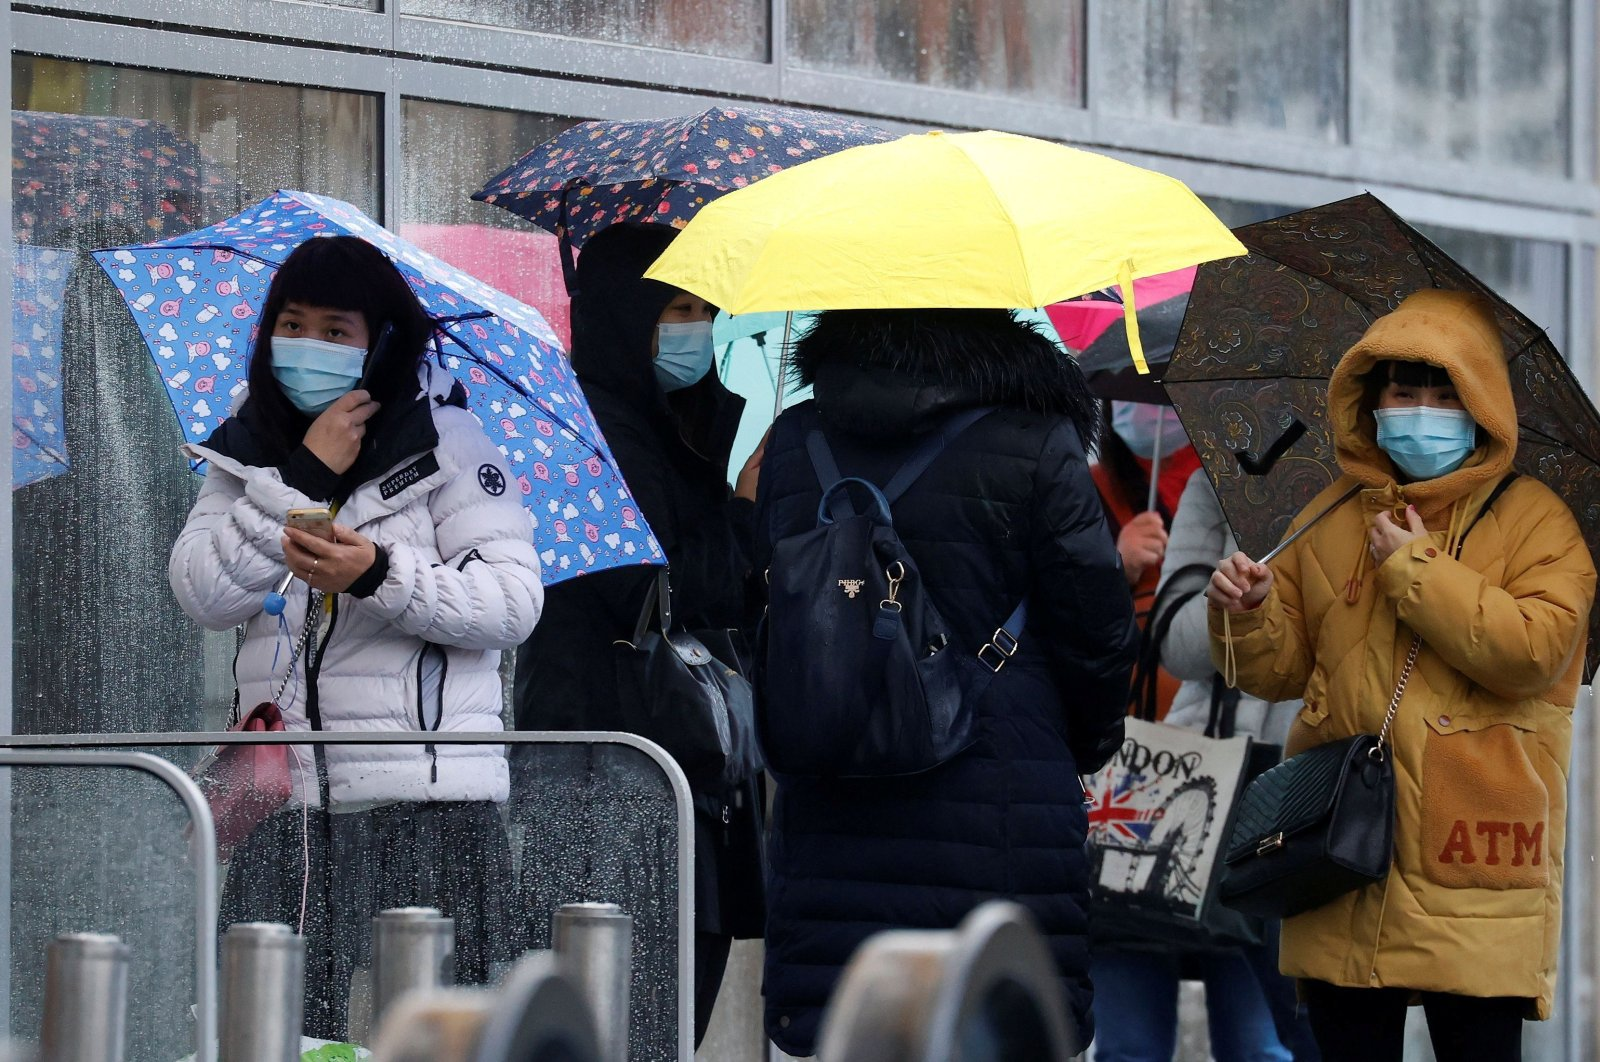 People wearing face masks shelter under umbrellas outside a department store, Manchester, Britain, Oct. 26, 2020. (REUTERS Photo)